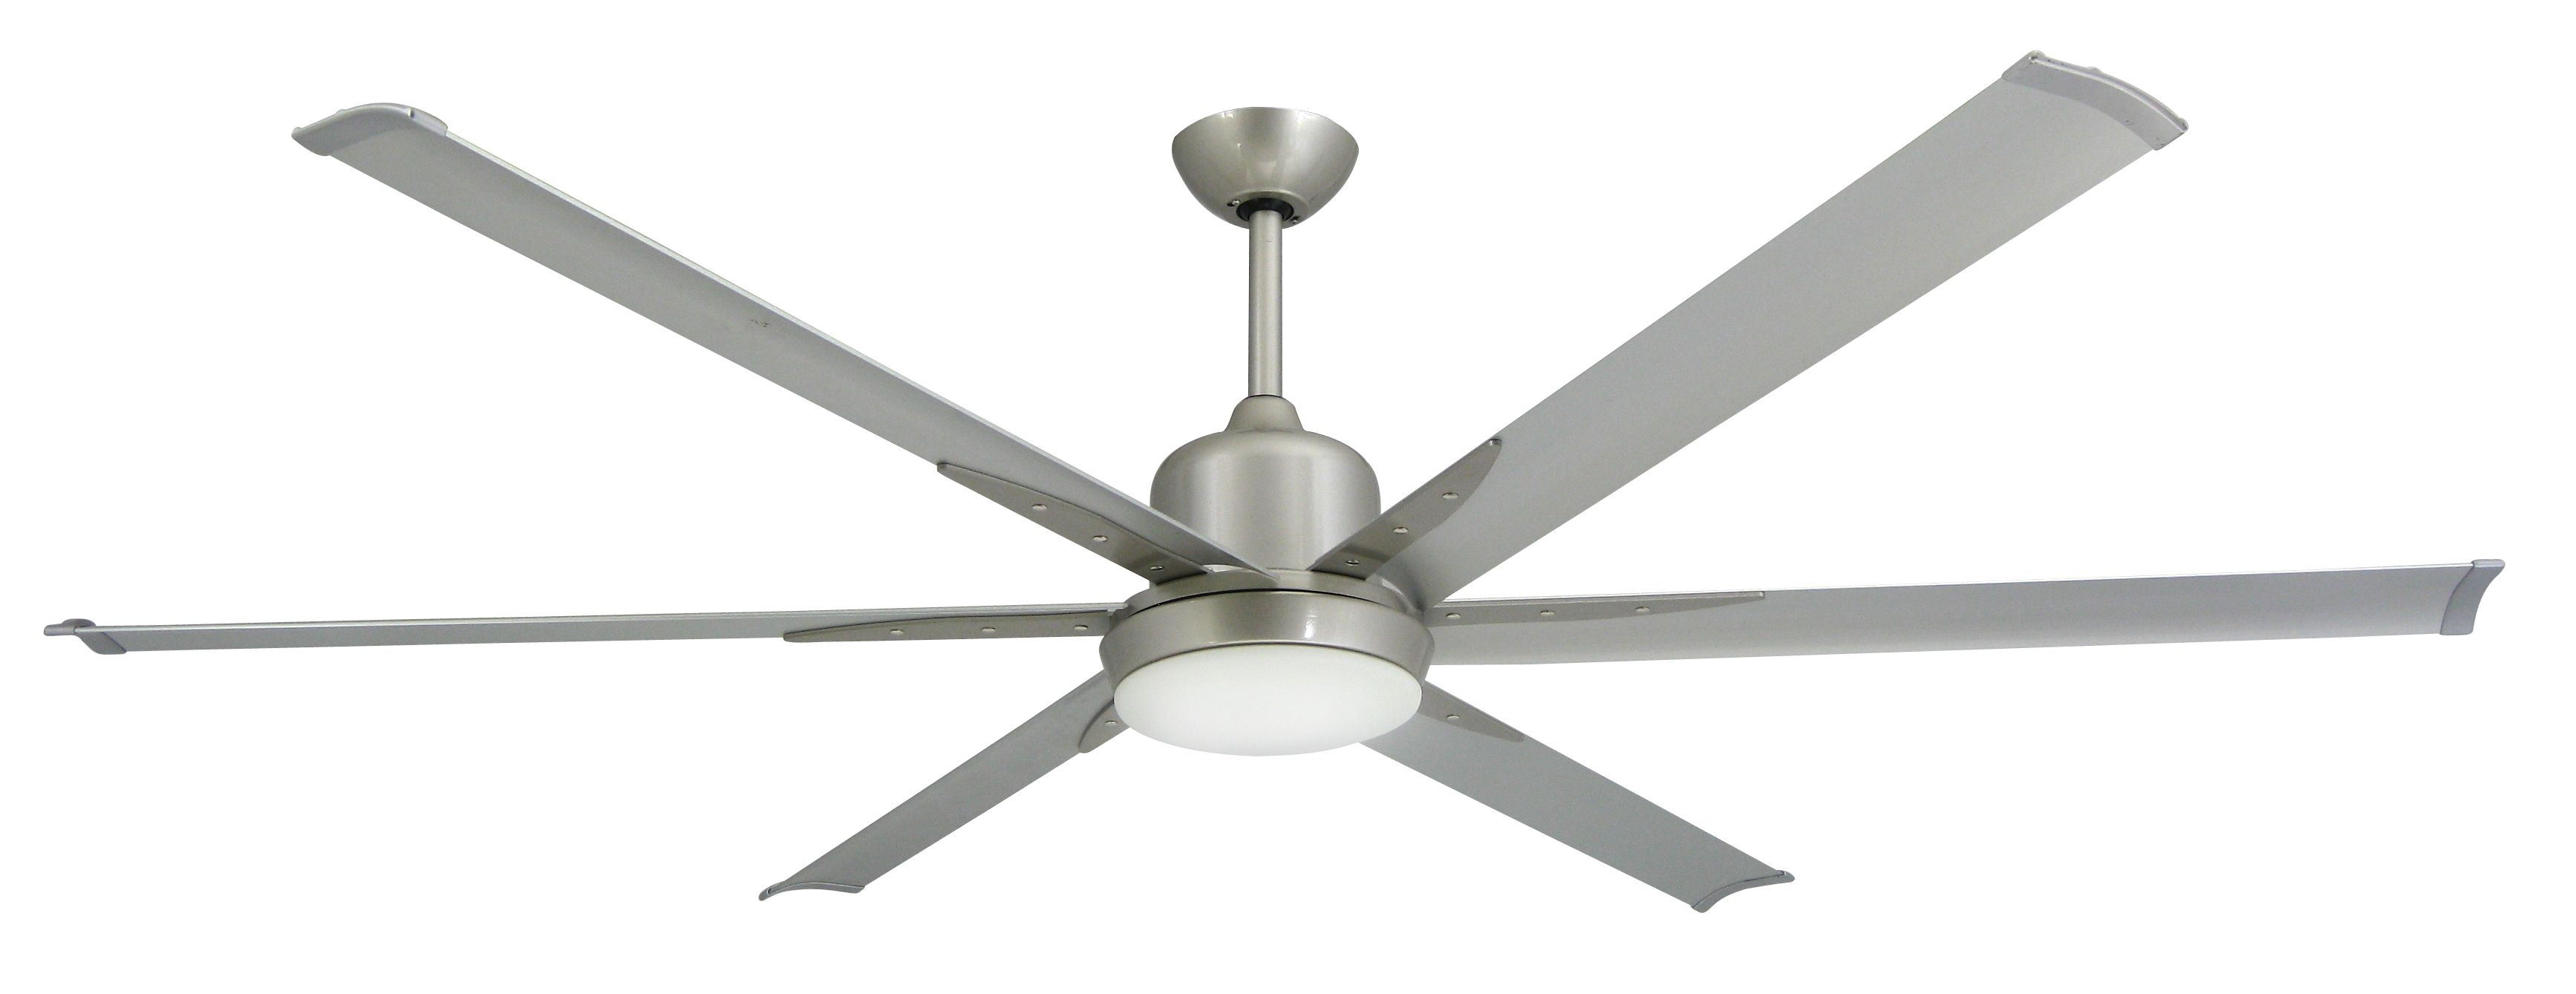 "20 best Industrial Ceiling Fans 52"" 84"" images on Pinterest"